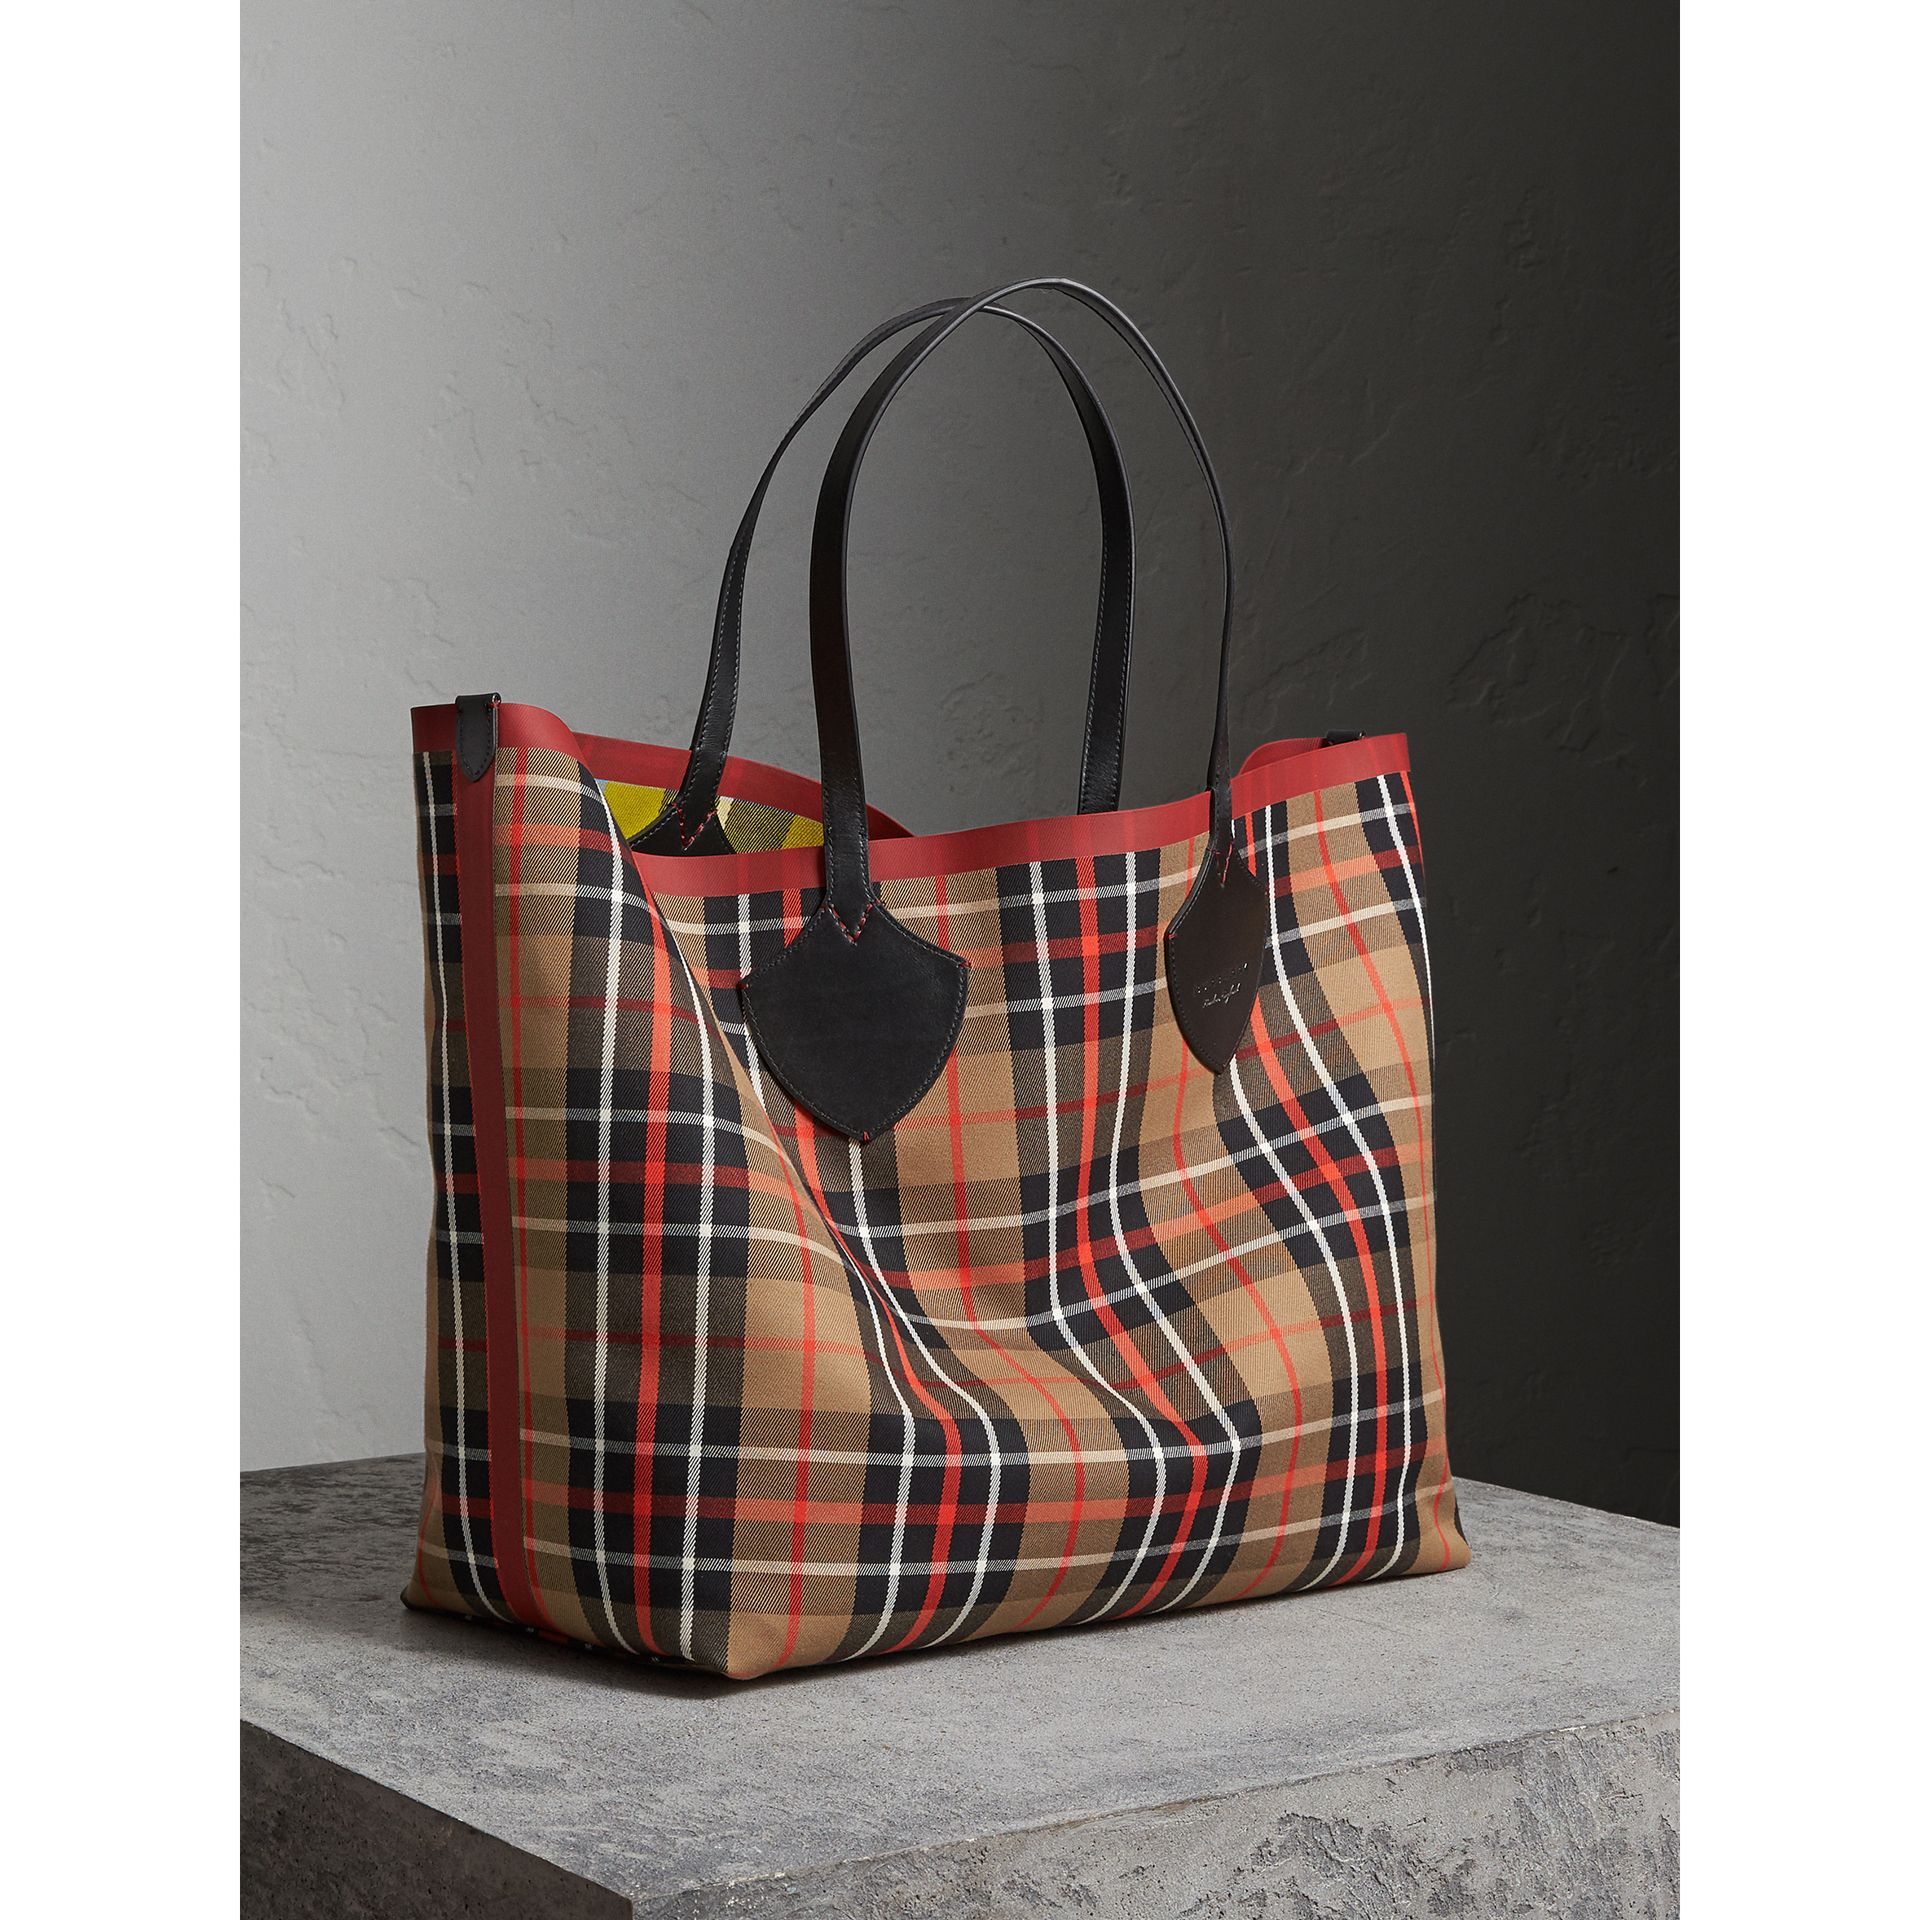 Sac tote The Giant réversible en coton tartan (Caramel/jaune Lin) | Burberry - photo de la galerie 5